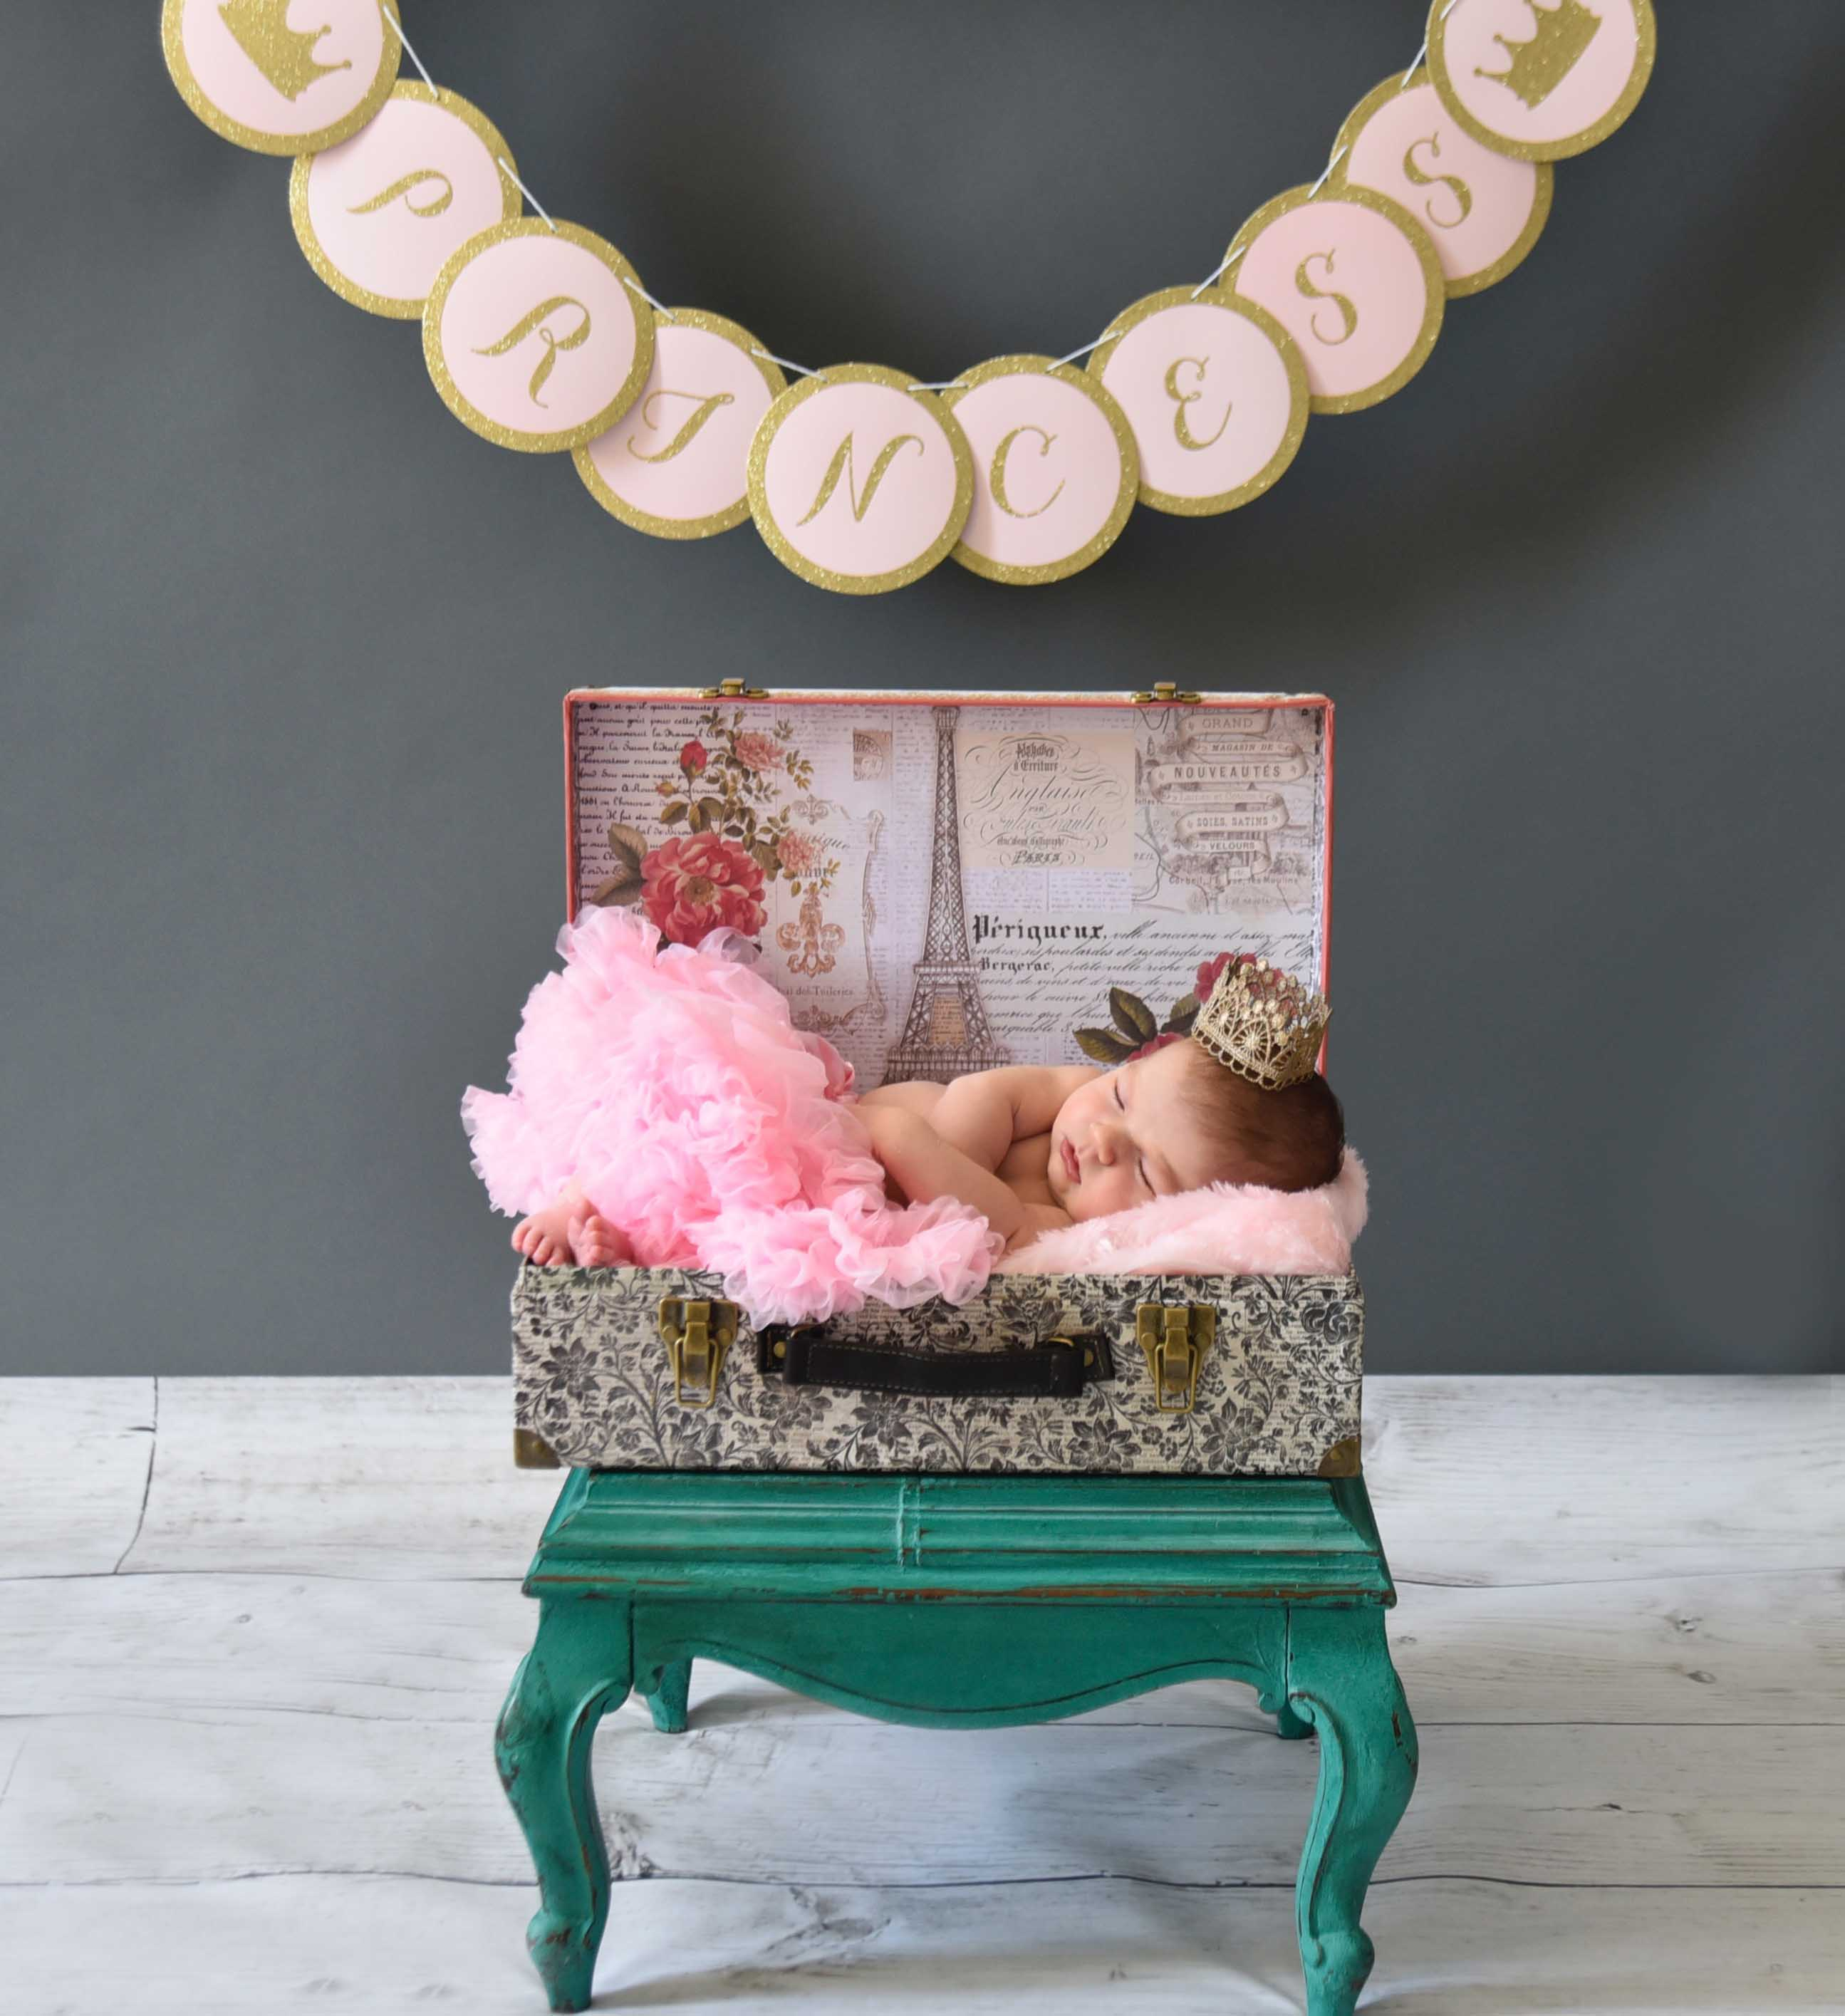 babies, newborn, creative baby photography, eclectic photography, brighton east sussex